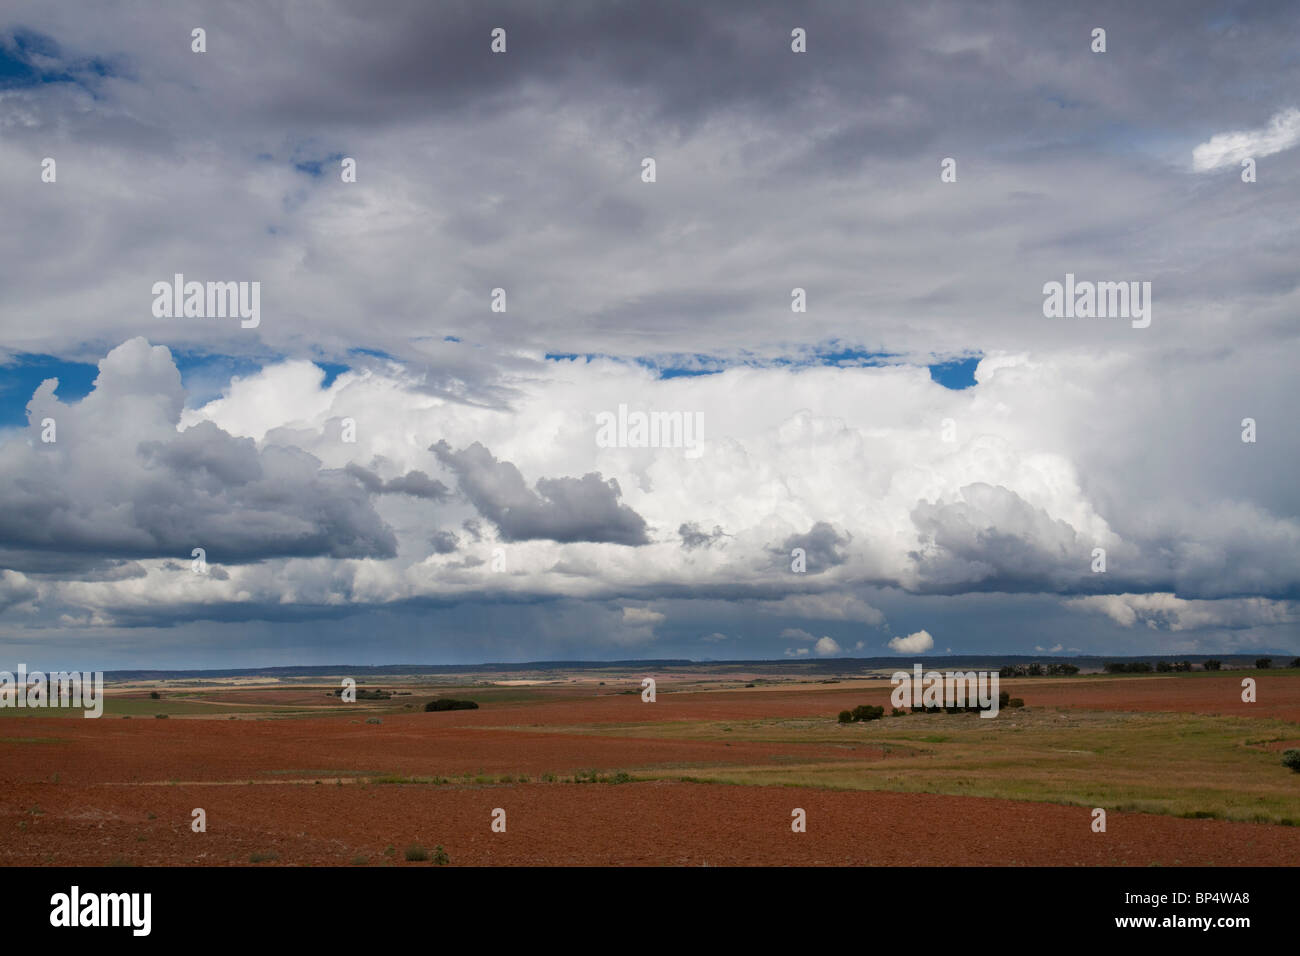 Dramatic cumulus cloud formations looming over a vast field of tilled red soil in southwest Colorado - Stock Image